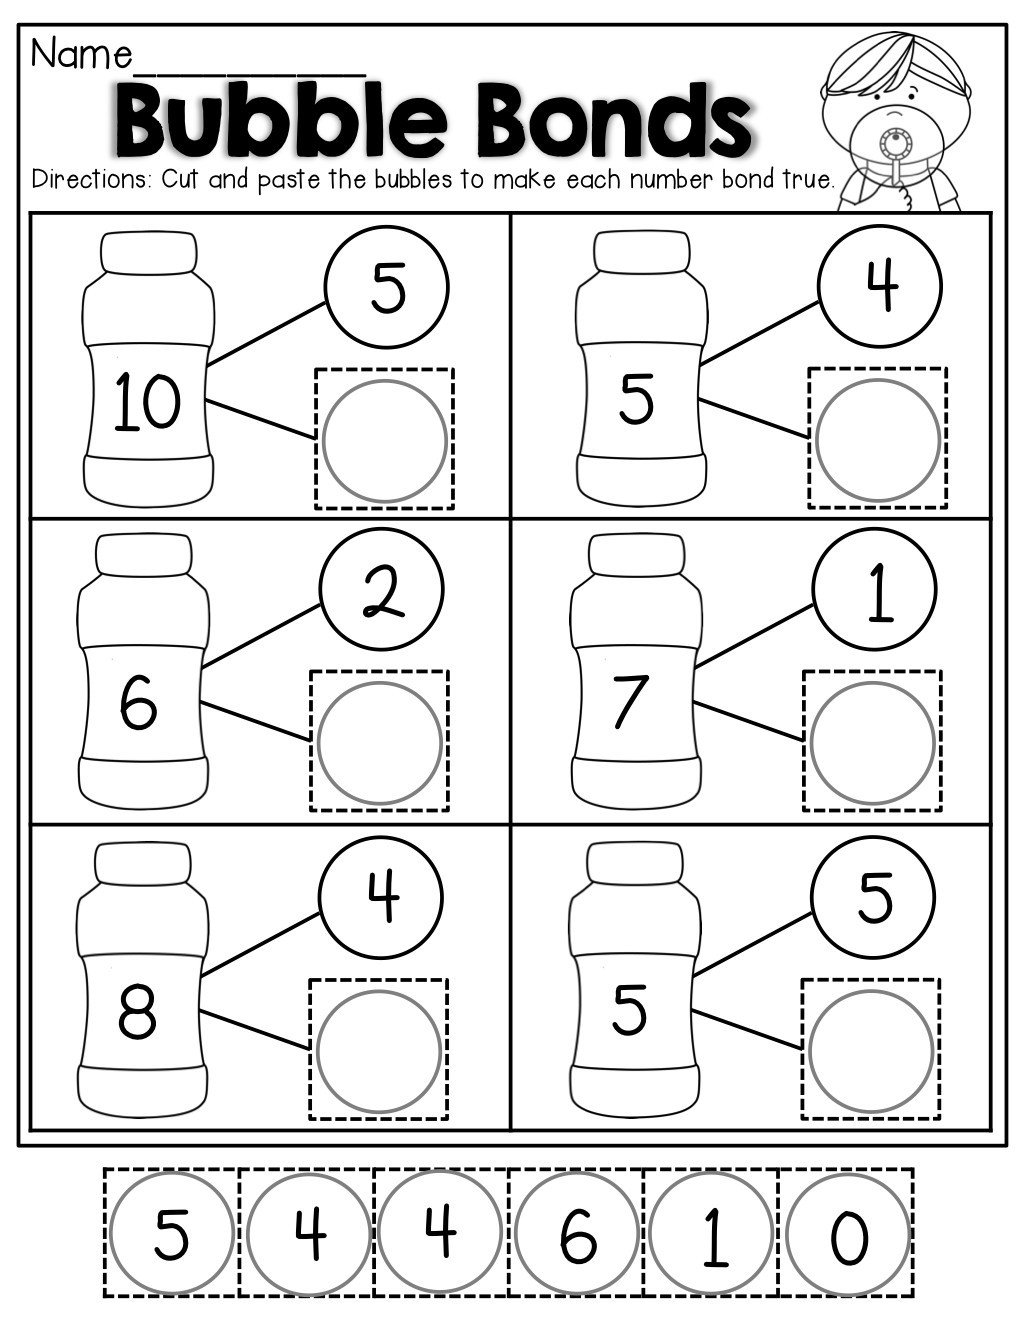 Kindergarten Number Bond Worksheet 20 Number Bonds Kindergarten Worksheets